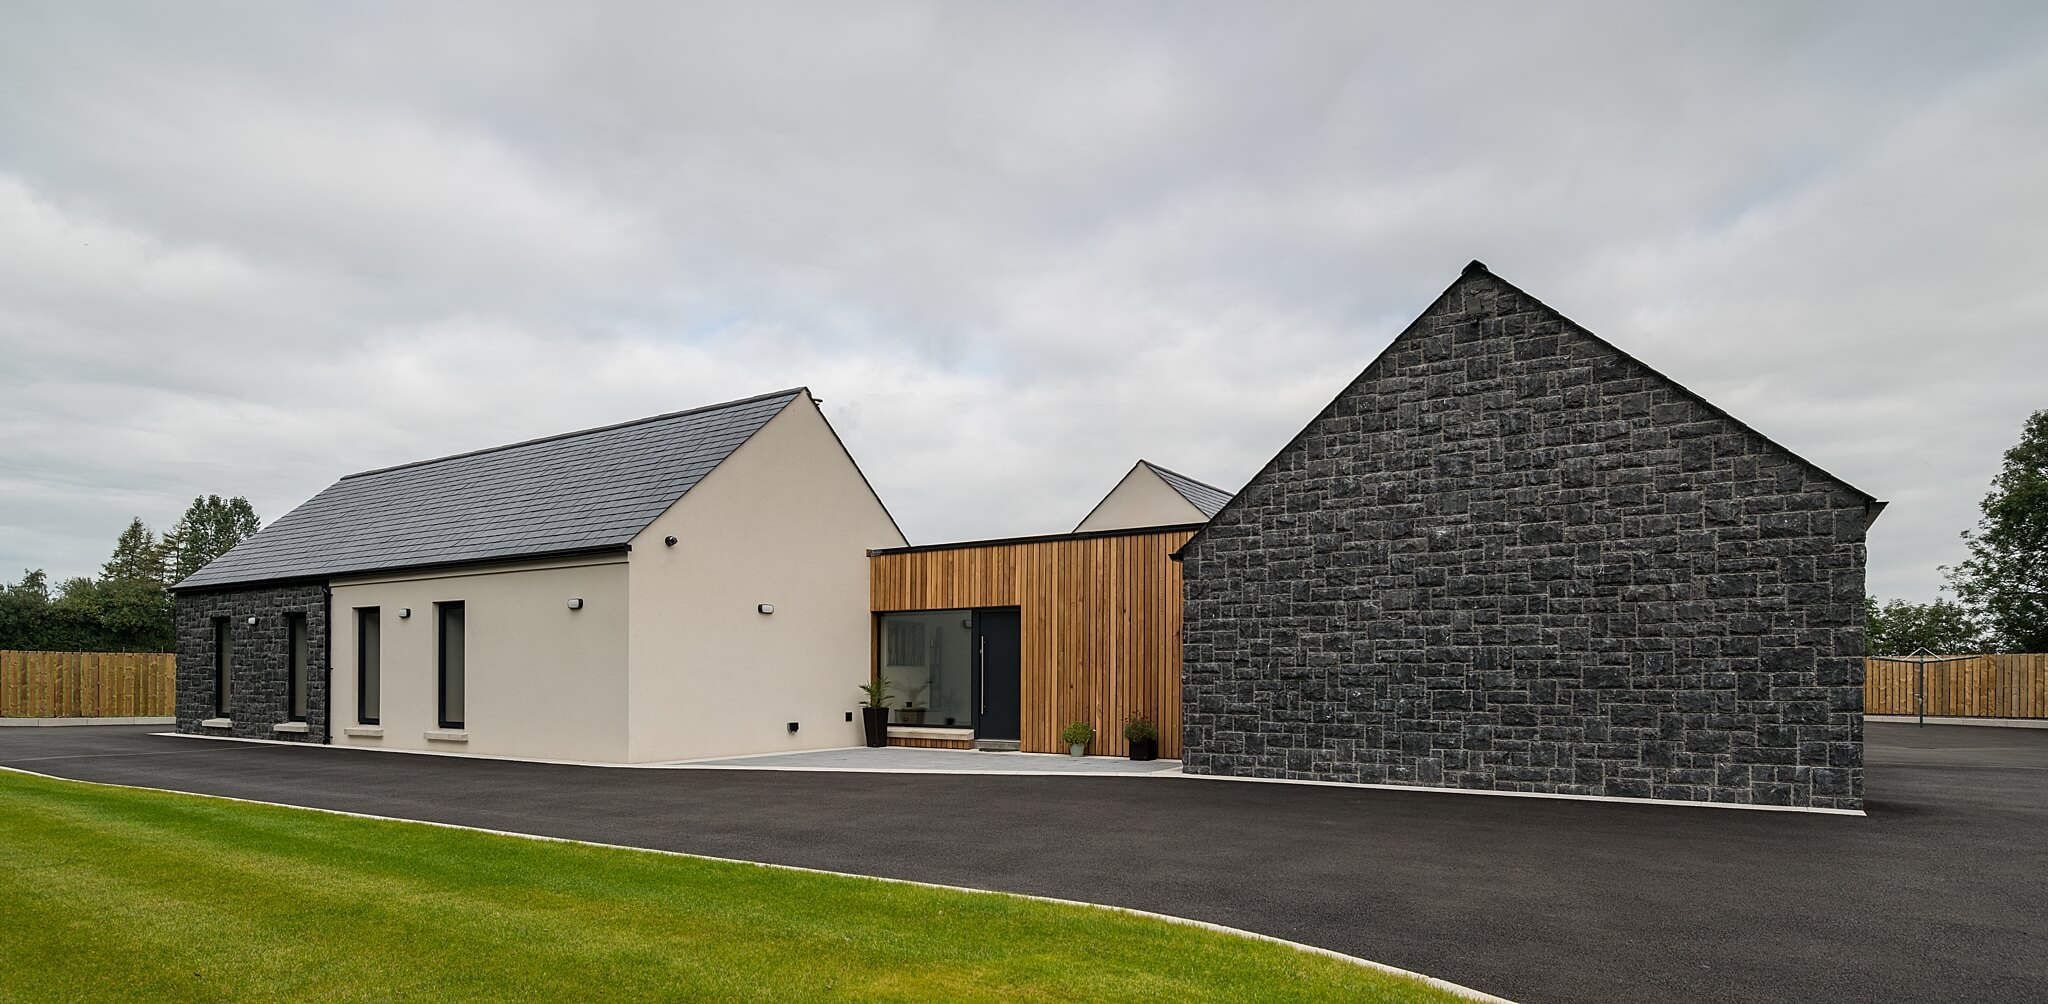 modern house frontage with timber cladding and stone walls